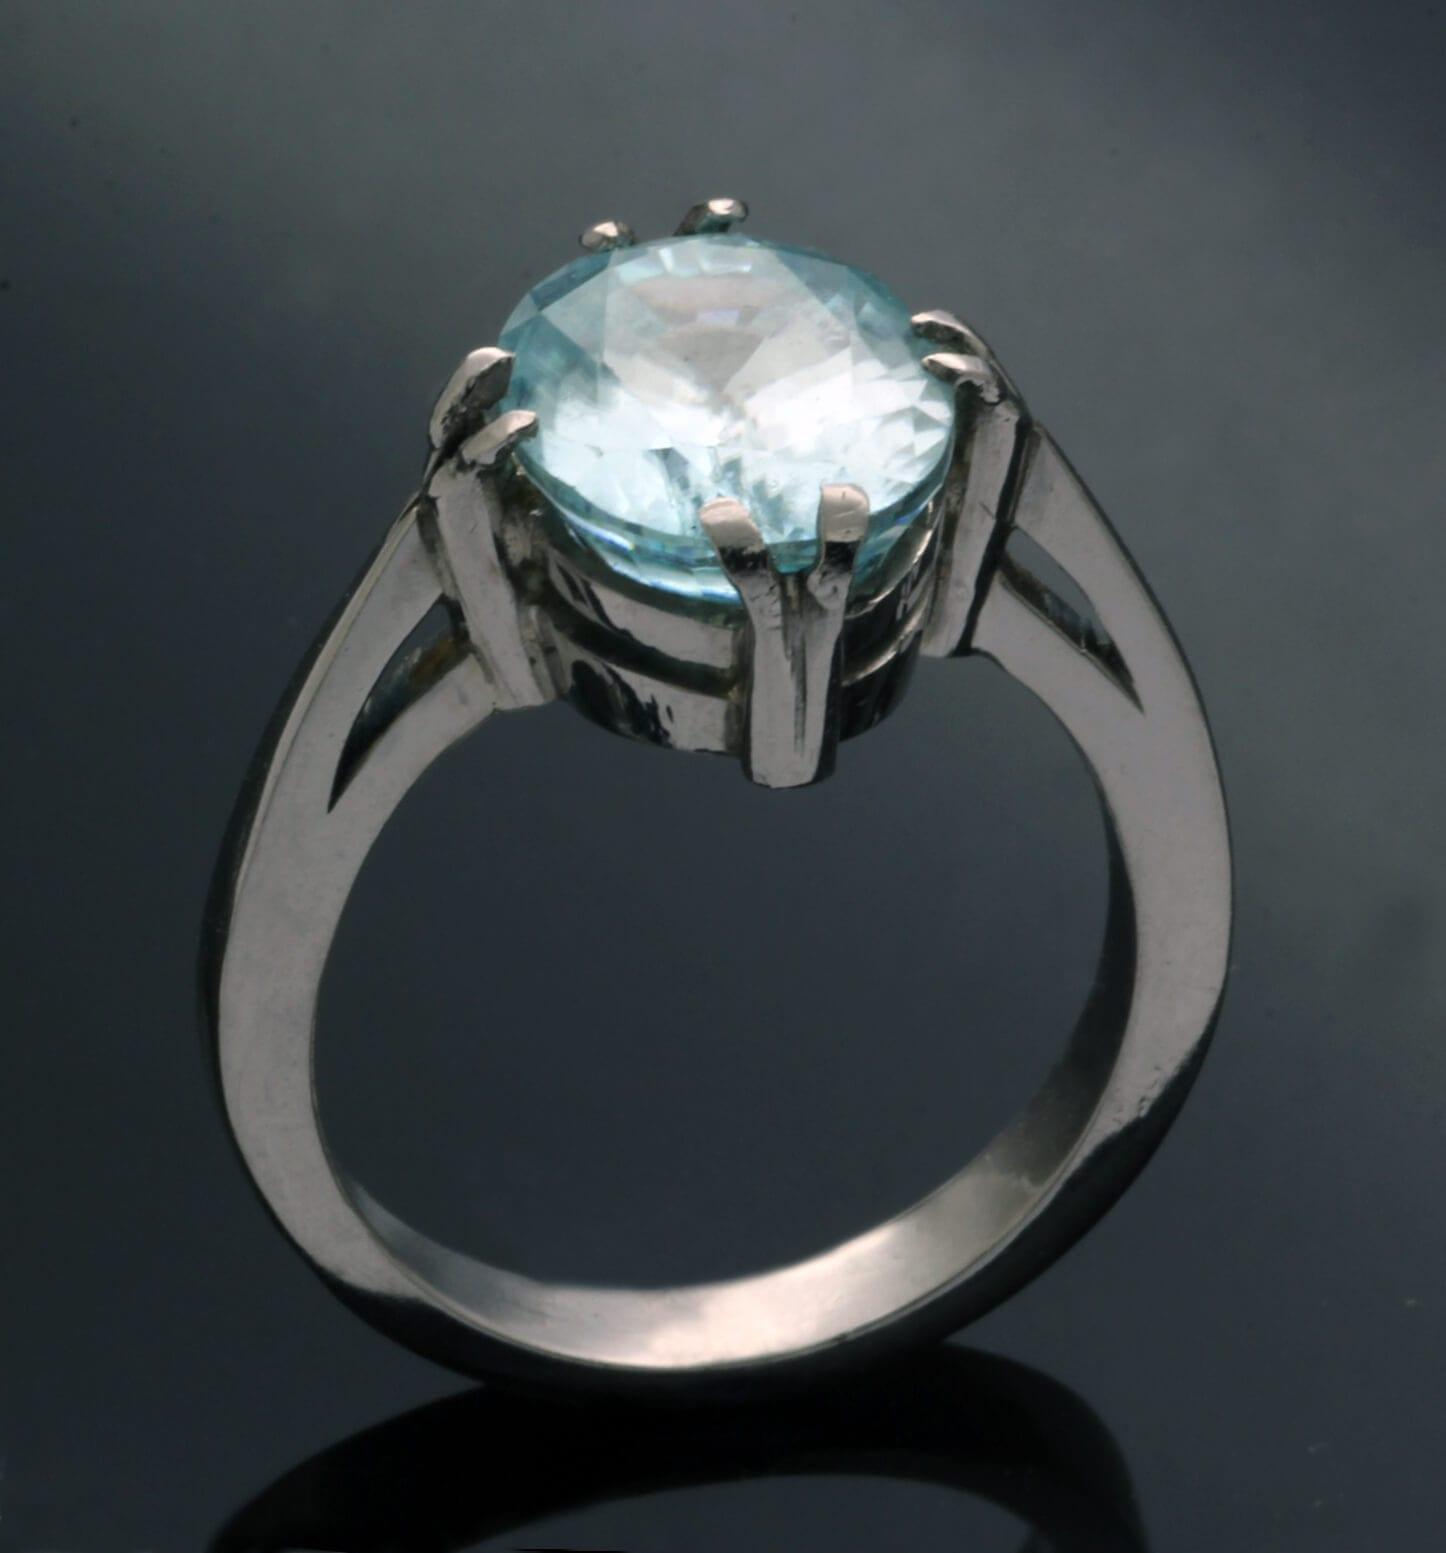 Palladium statement ring with Zircon gemstone handcrafted